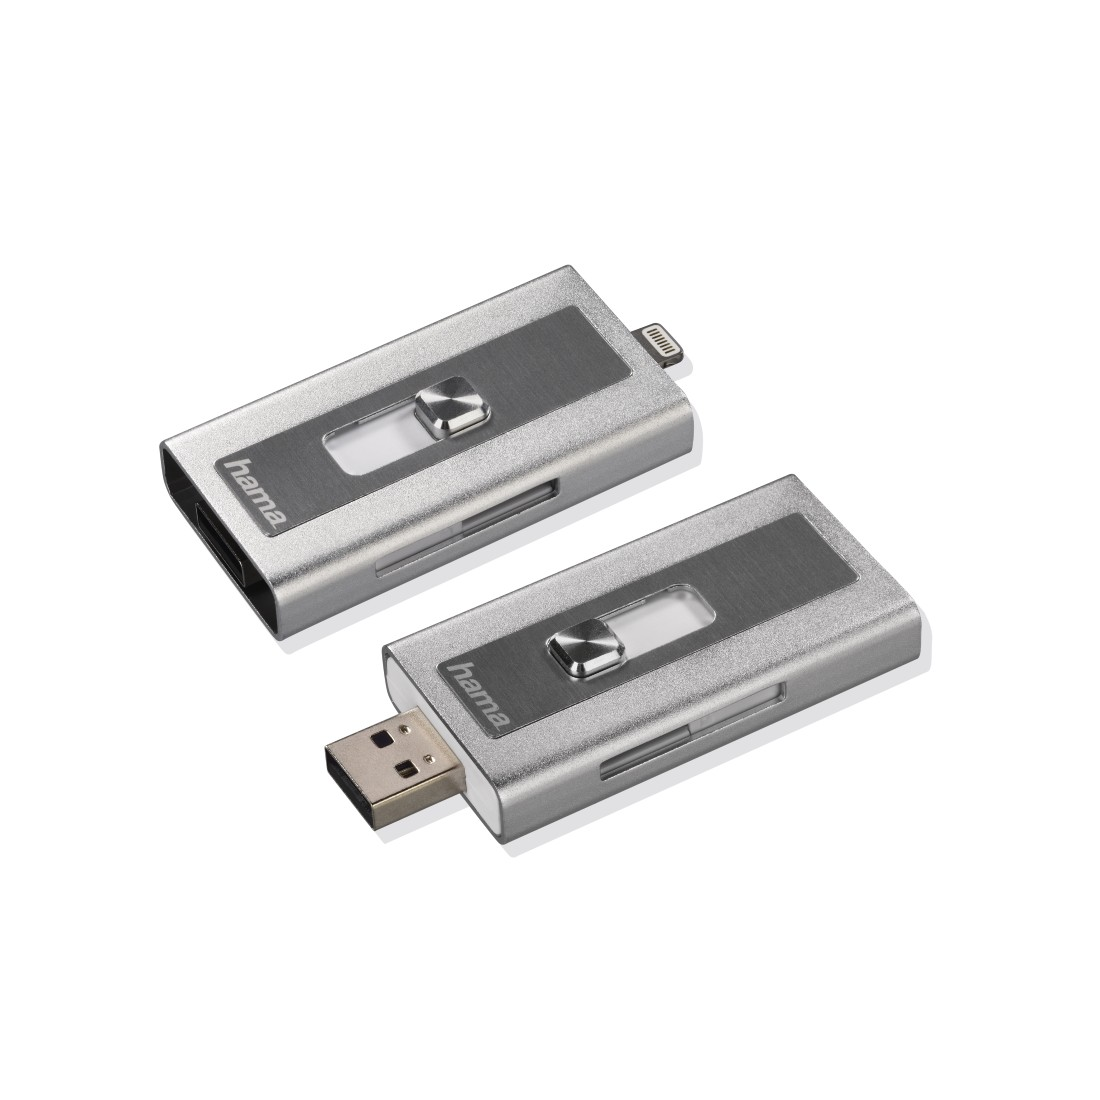 abx5 High-Res Image 5 - Hama, MoveData Lightning USB Card Reader, microSD, silver